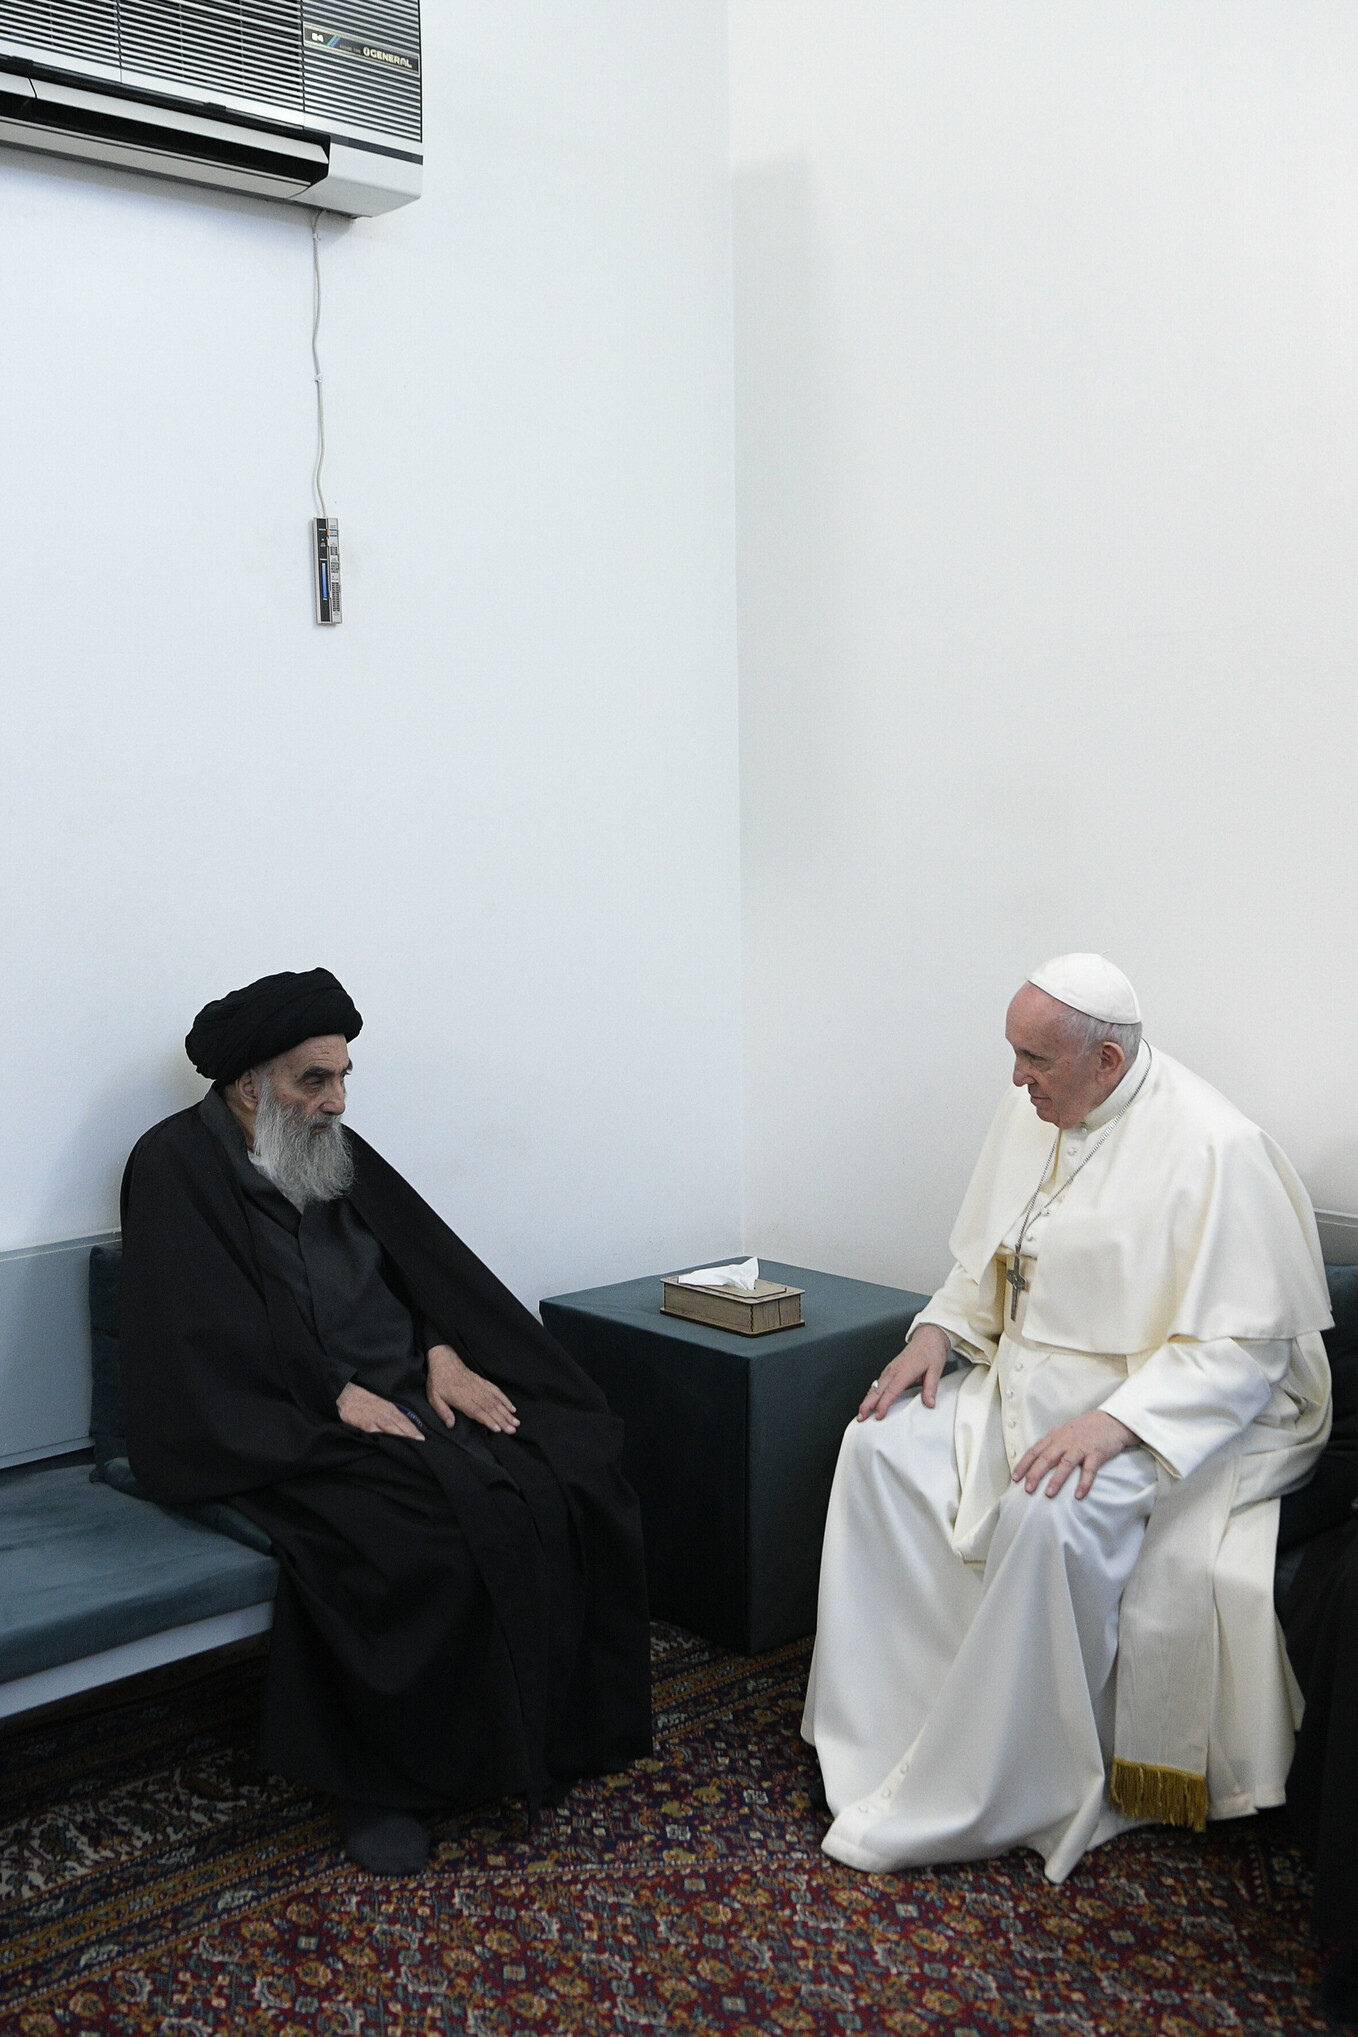 Pope Francis meets Grand Ayatollah Ali al-Sistani in Najaf, Iraq, March 6, 2021